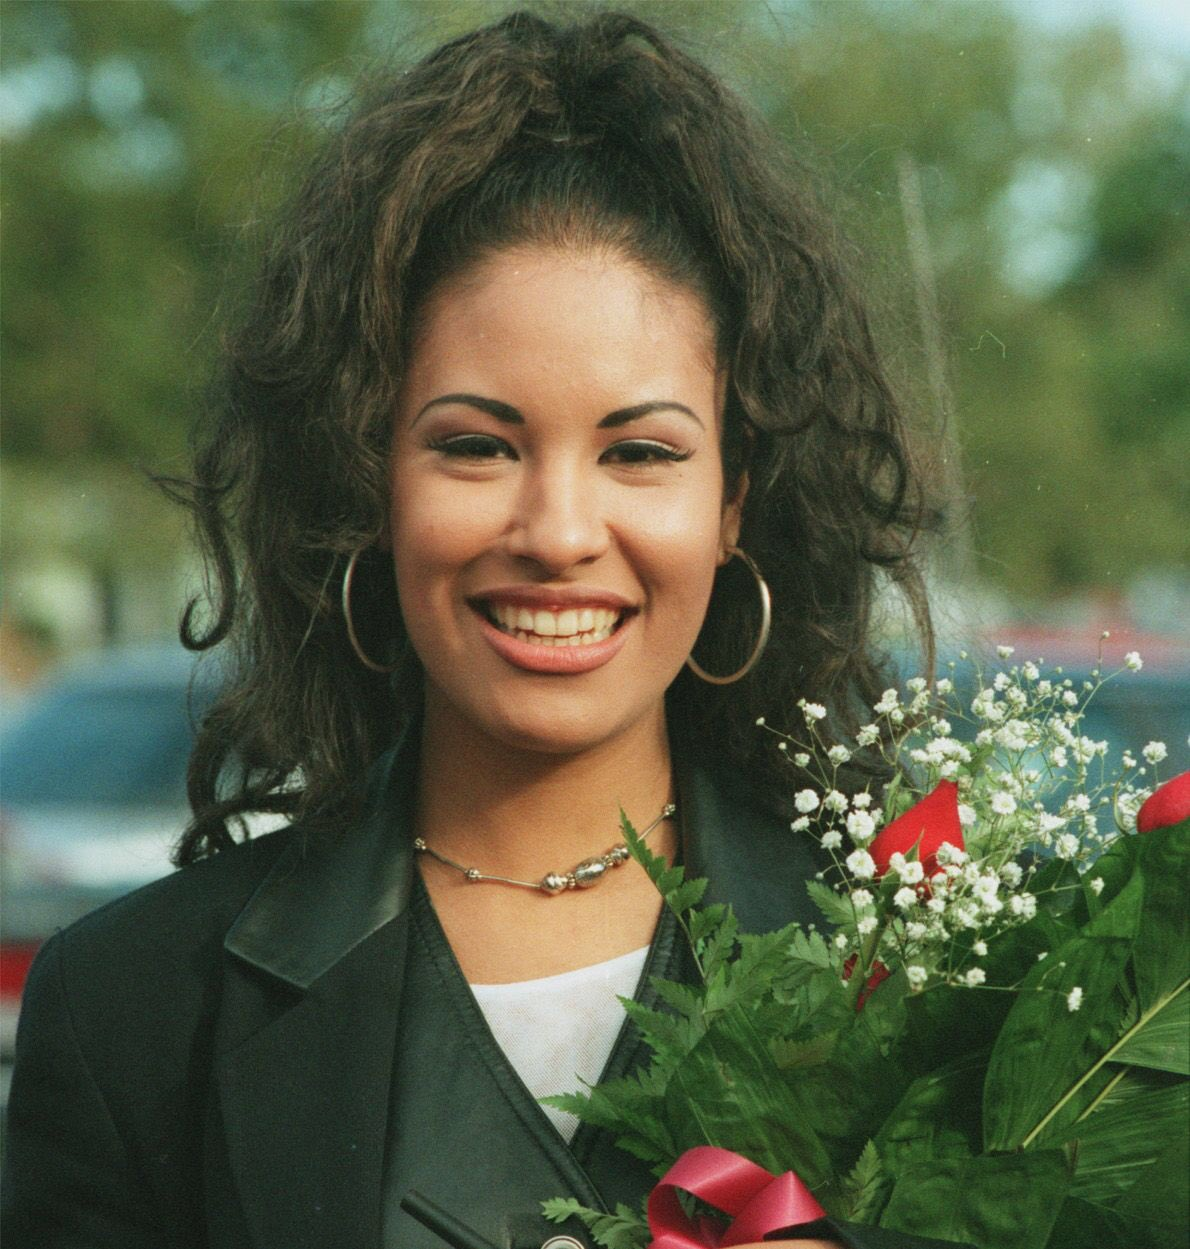 Happy Birthday to La Reina Selena Quintanilla, resting in heaven as you live on in our hearts